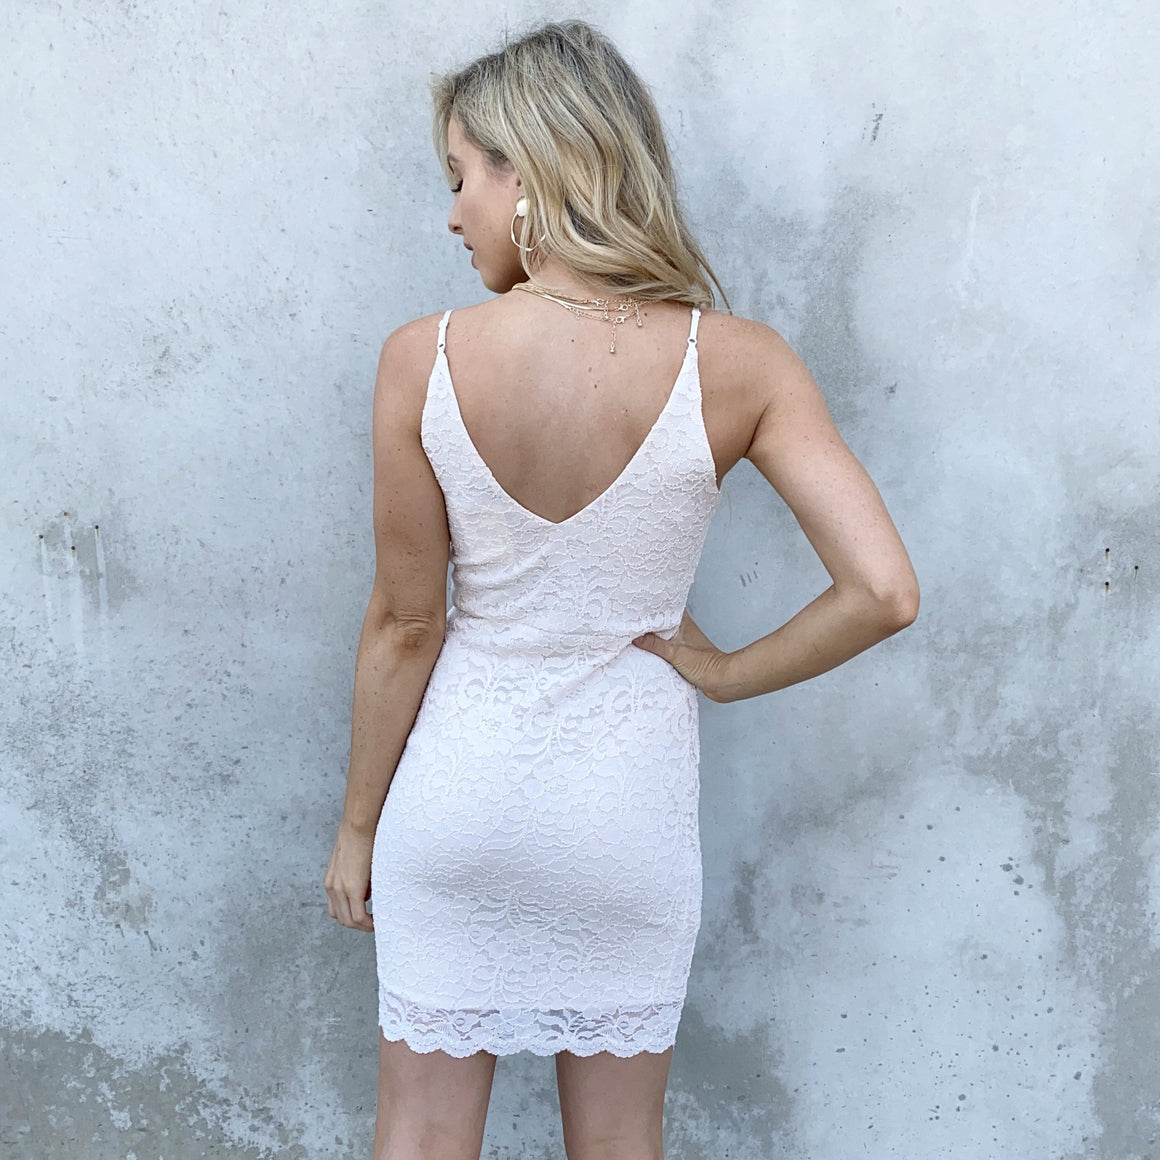 Loving Lace Ivory Dress - Dainty Hooligan